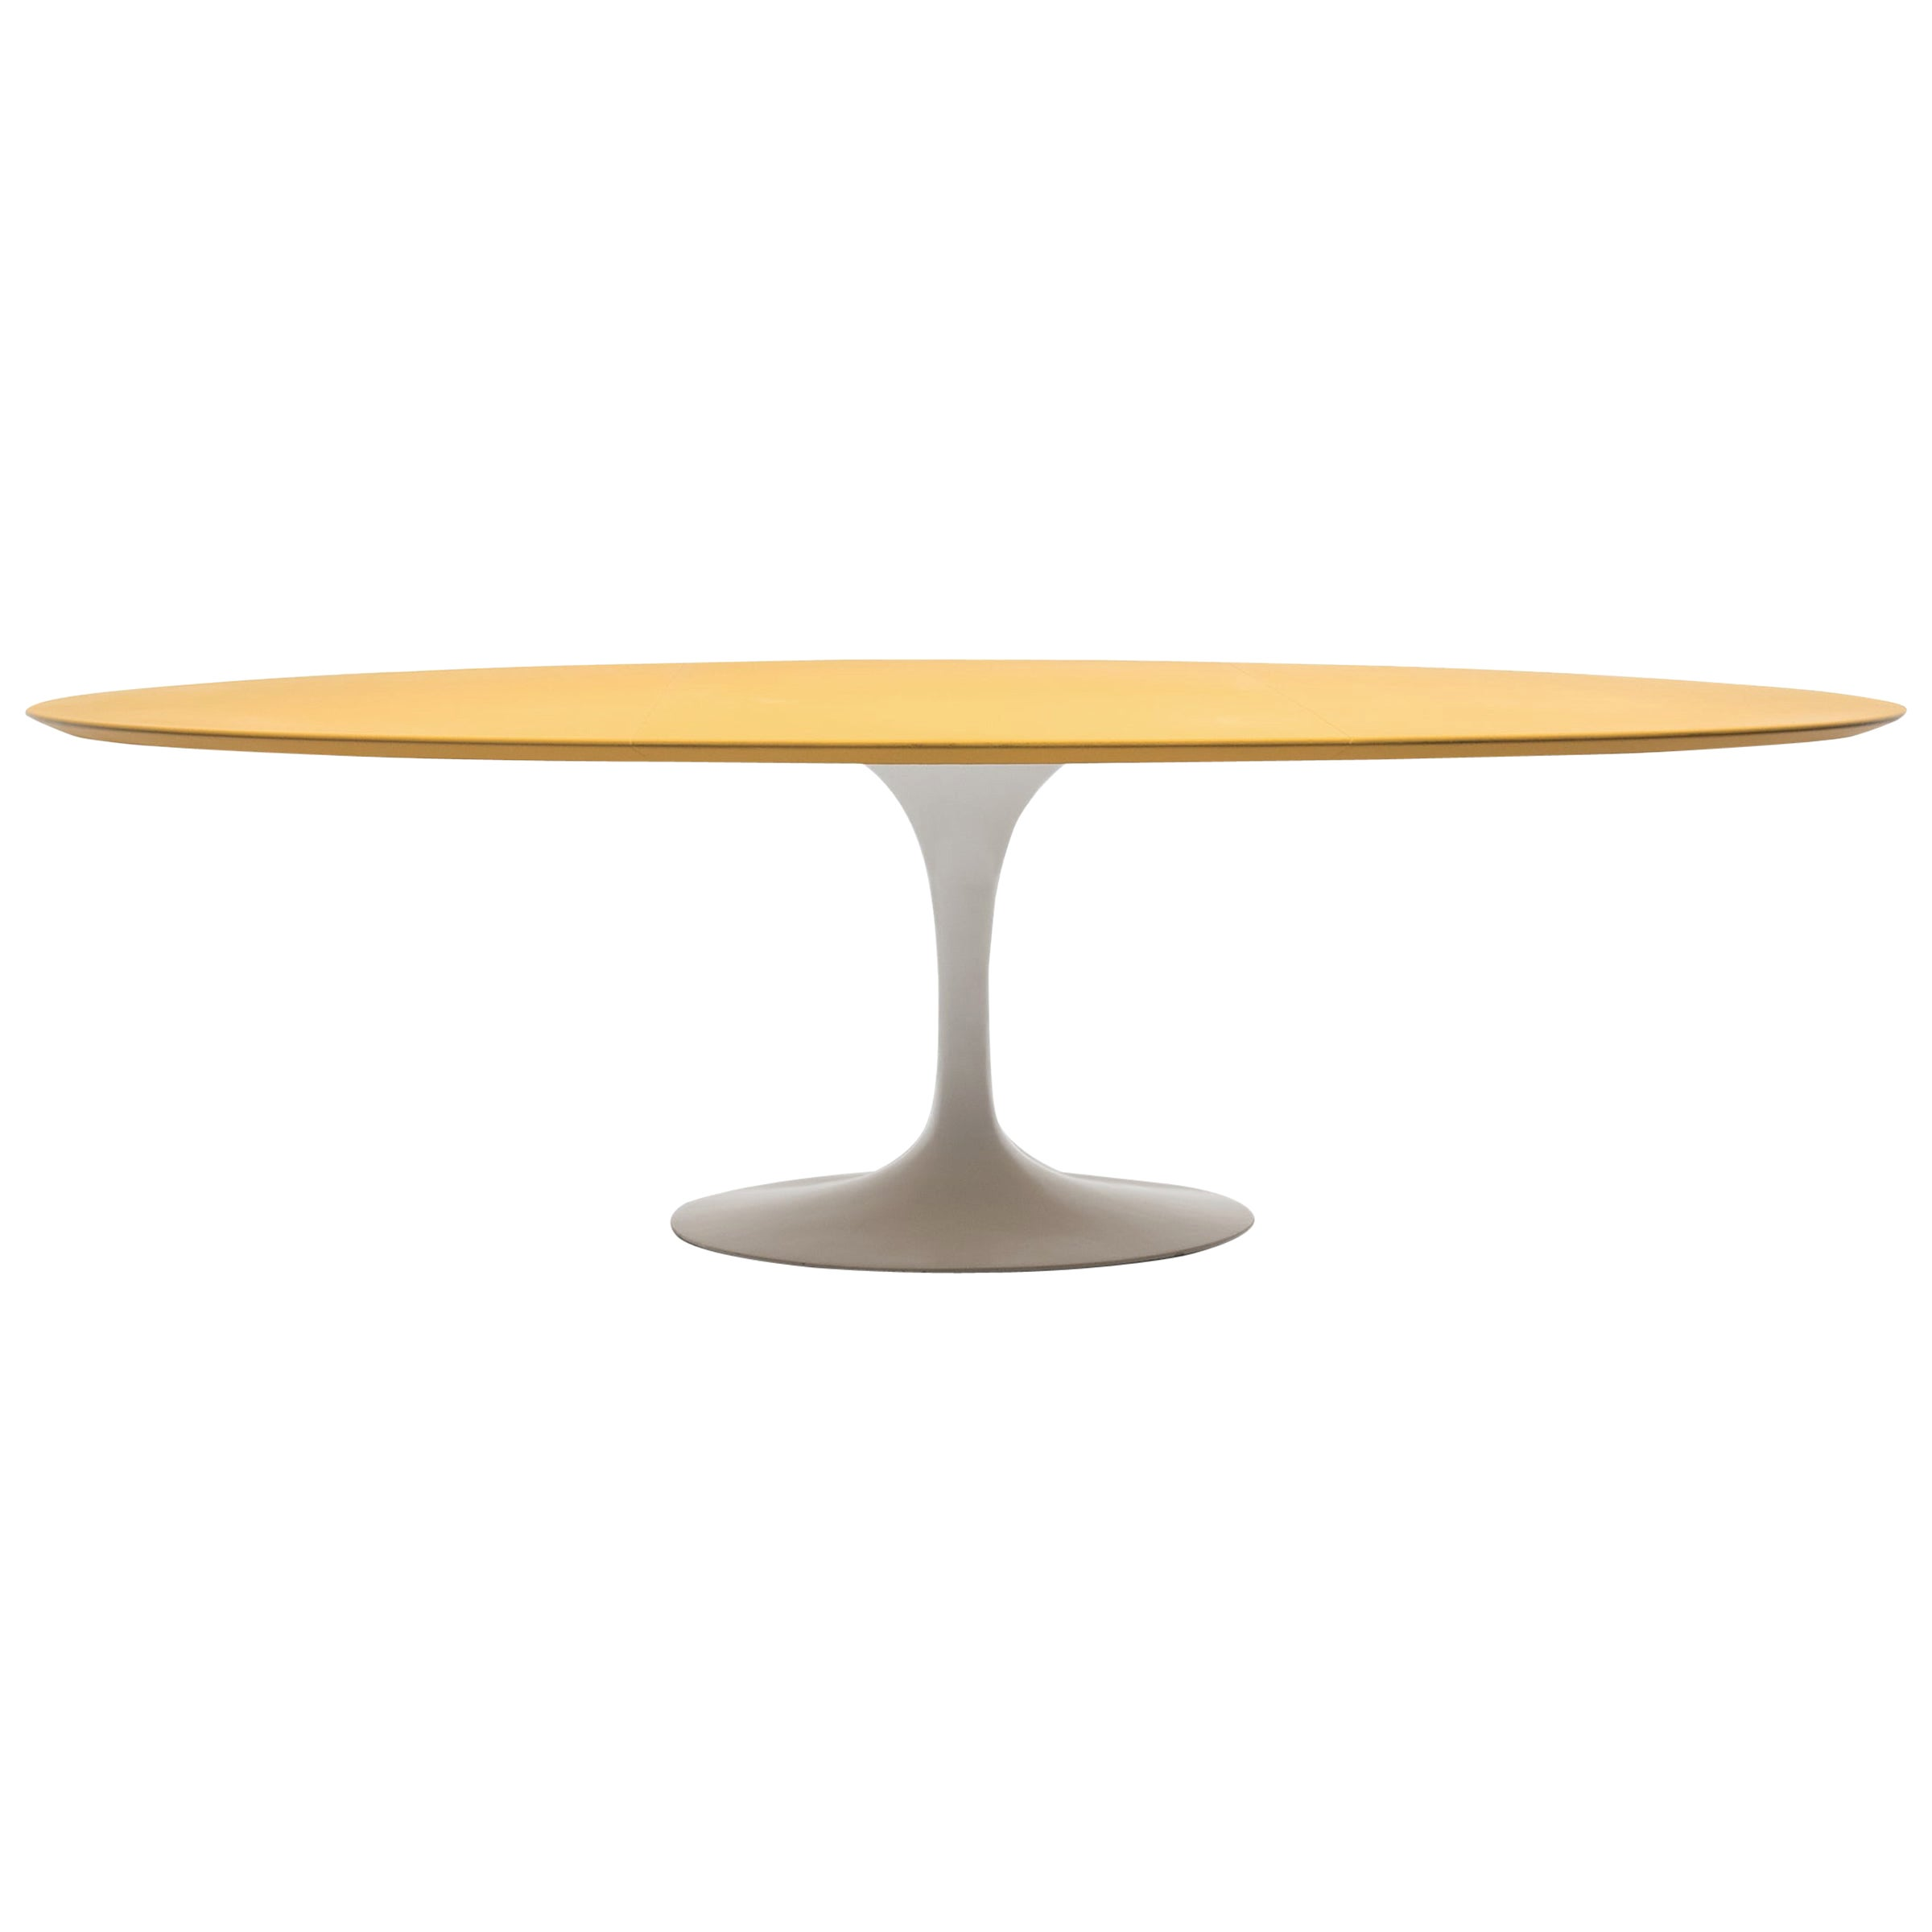 Vintage Knoll Saarinen Dining Table with Yellow Leather Top